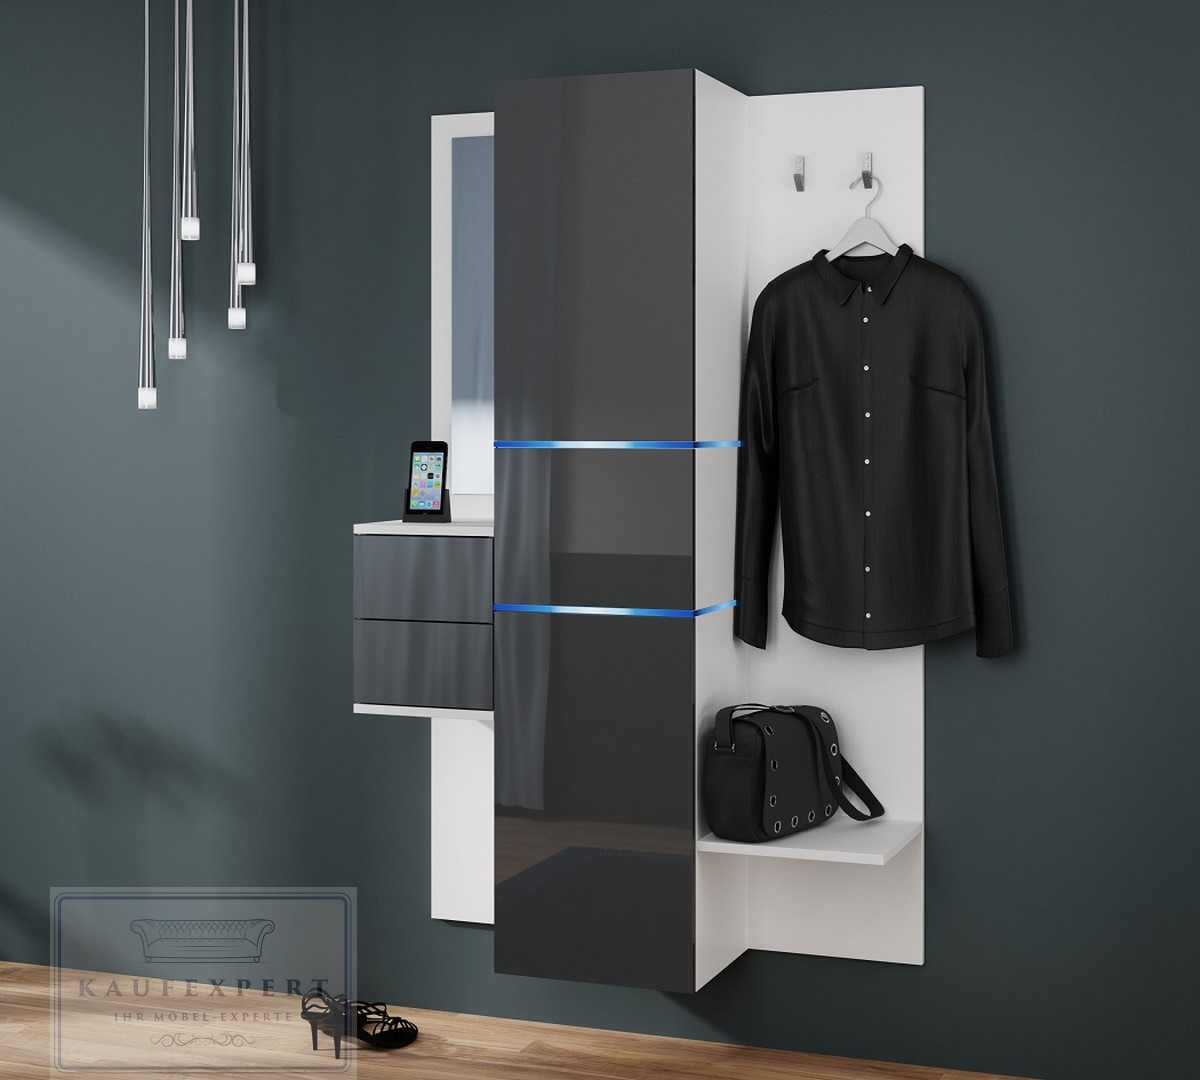 garderobe camino neue version wei hochglanz garderoben set flurgarderobe ebay. Black Bedroom Furniture Sets. Home Design Ideas